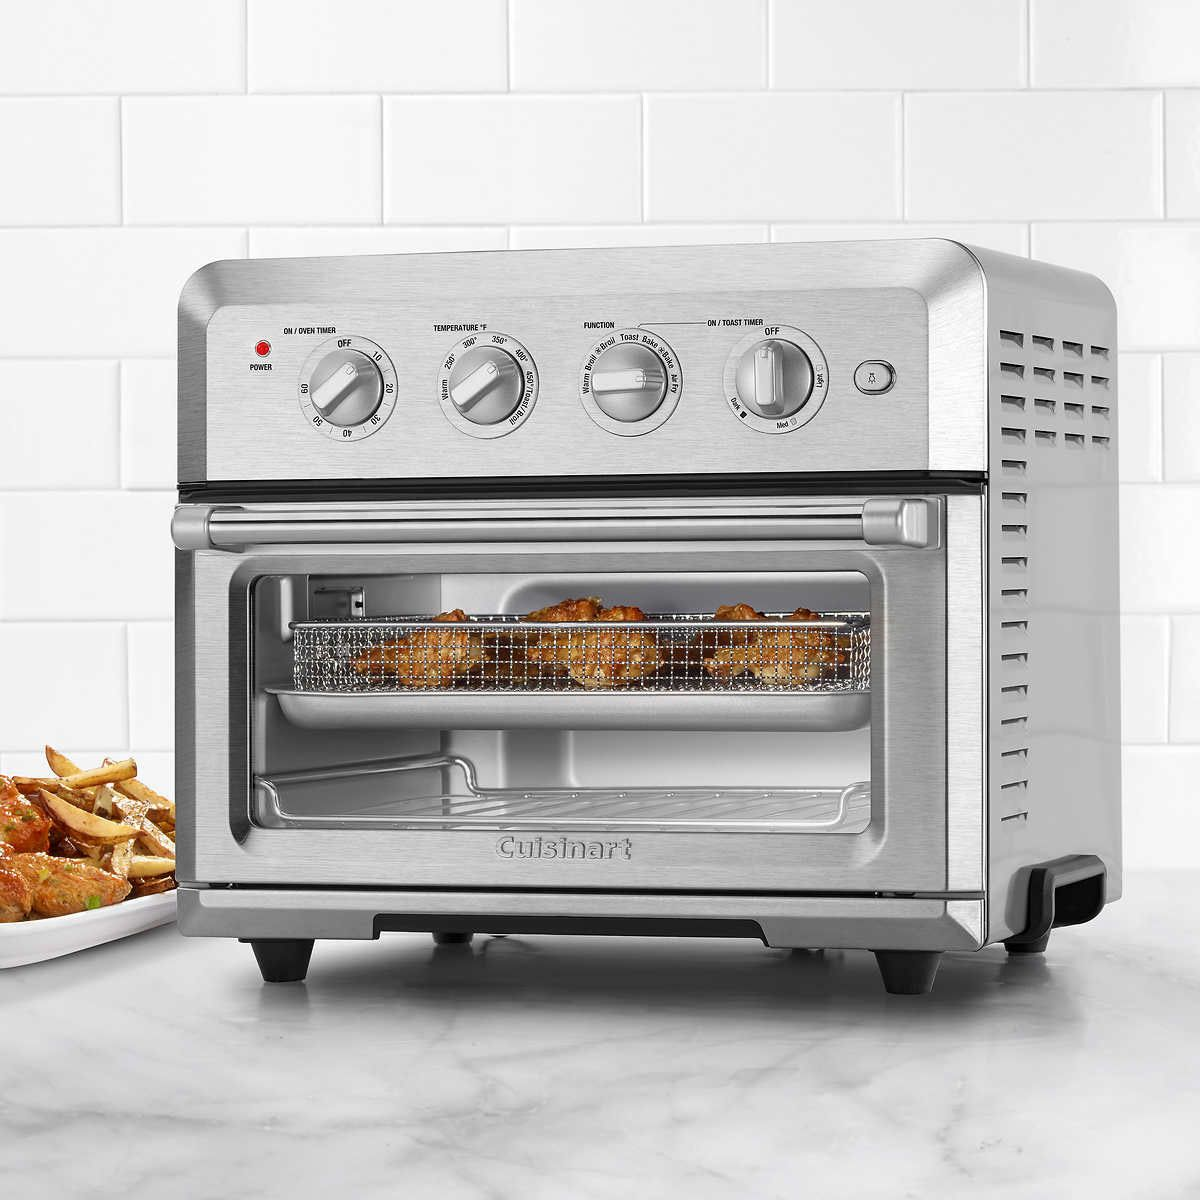 Cuisinart Airfryer Toaster Oven Review 2020 The Strategist New